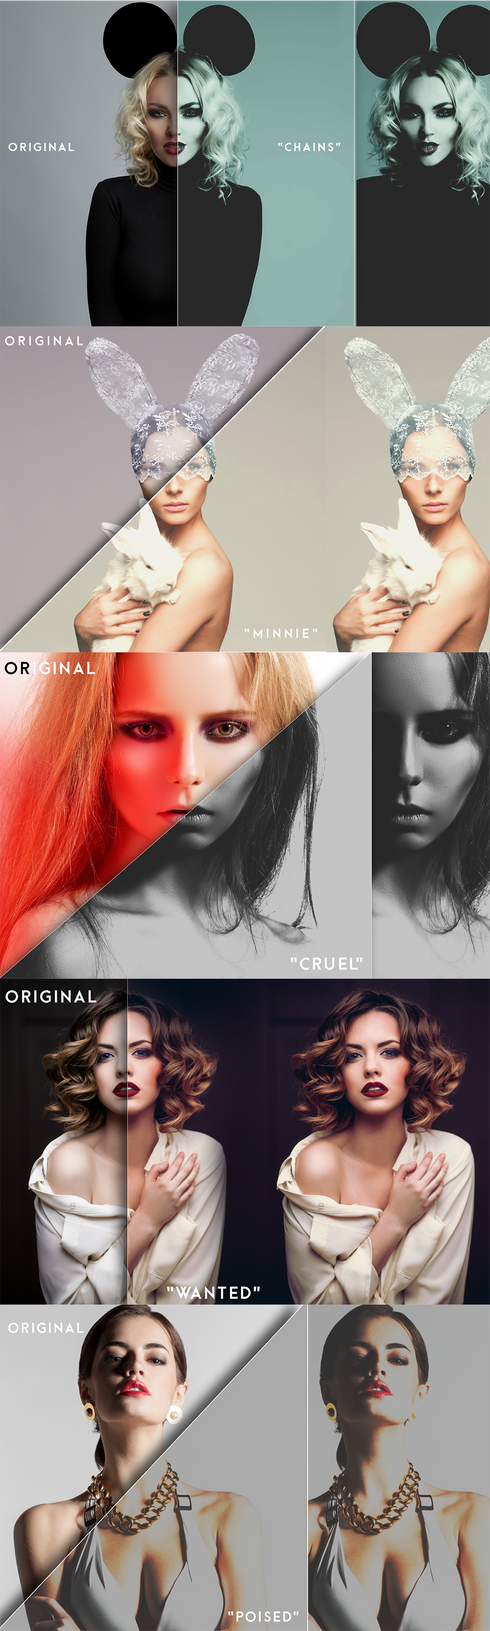 Salience Photoshop Actions by ShekFilters